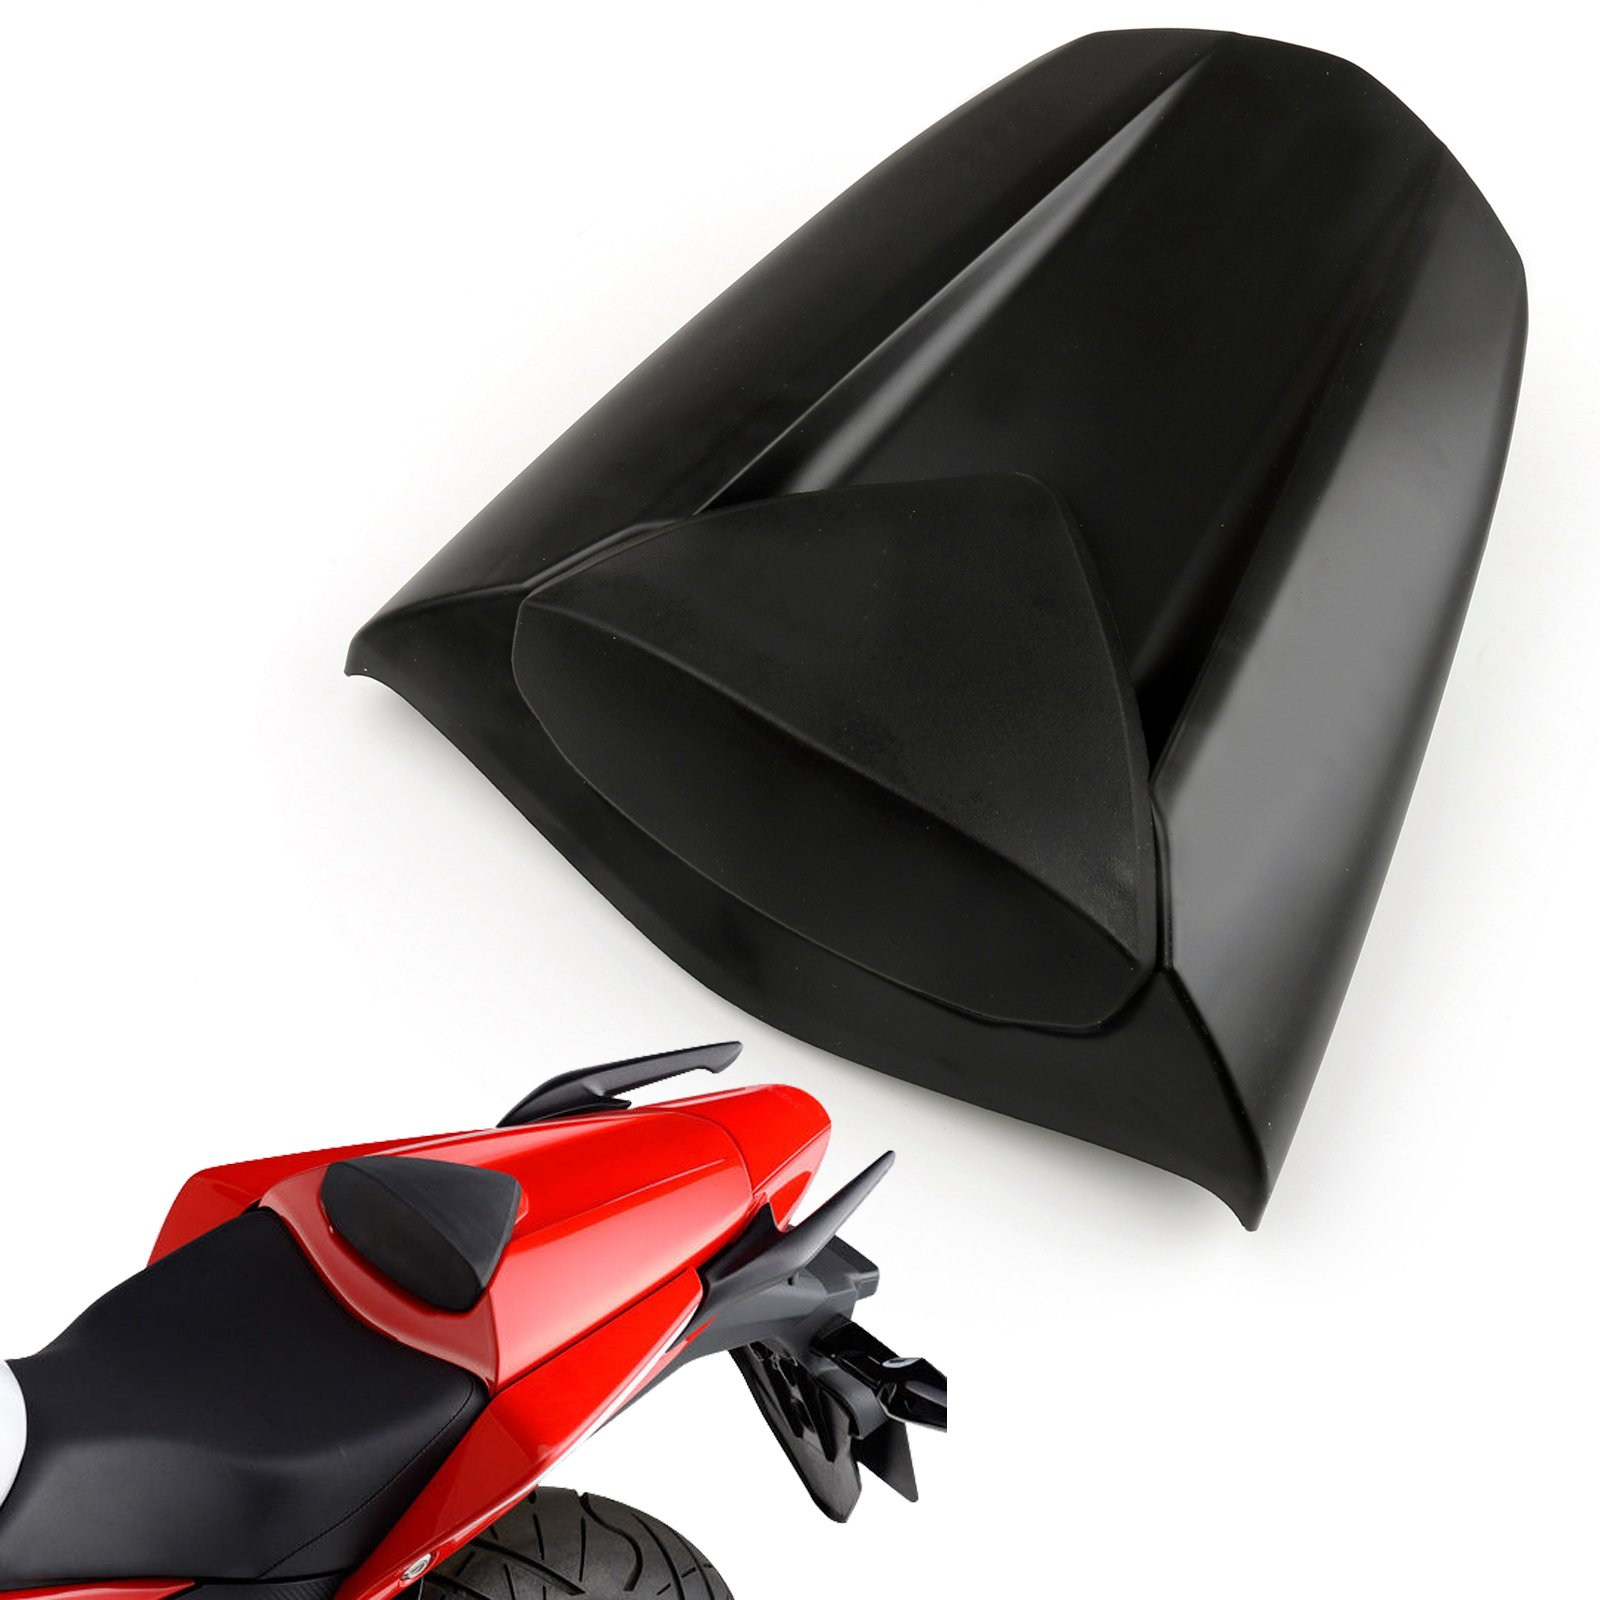 Areyourshop Rear Seat Cowl Cover For Honda CBR300R CB300F 2014-2016